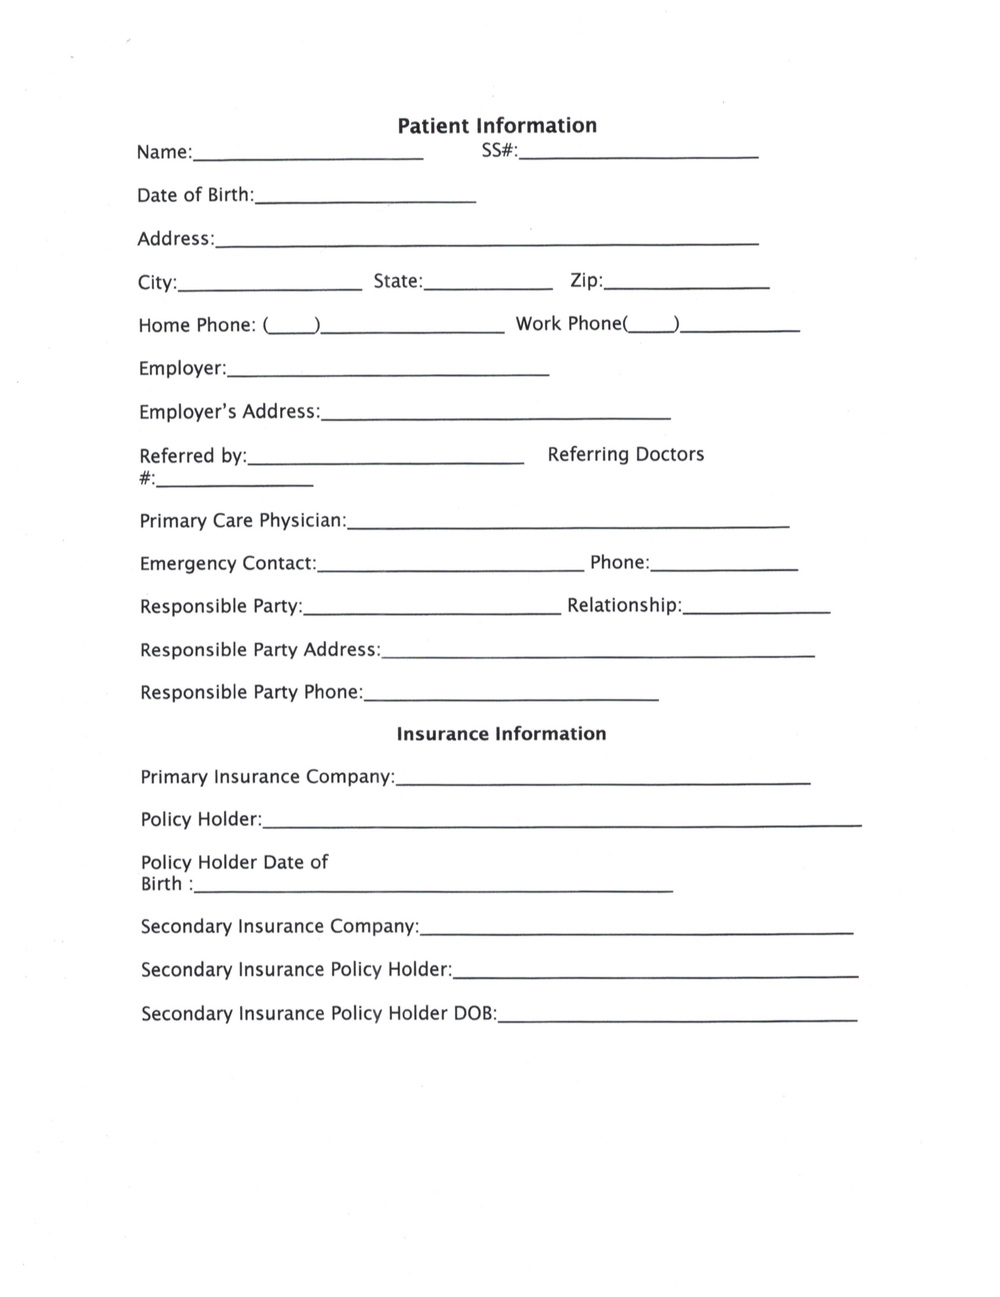 New Patient Information Forms